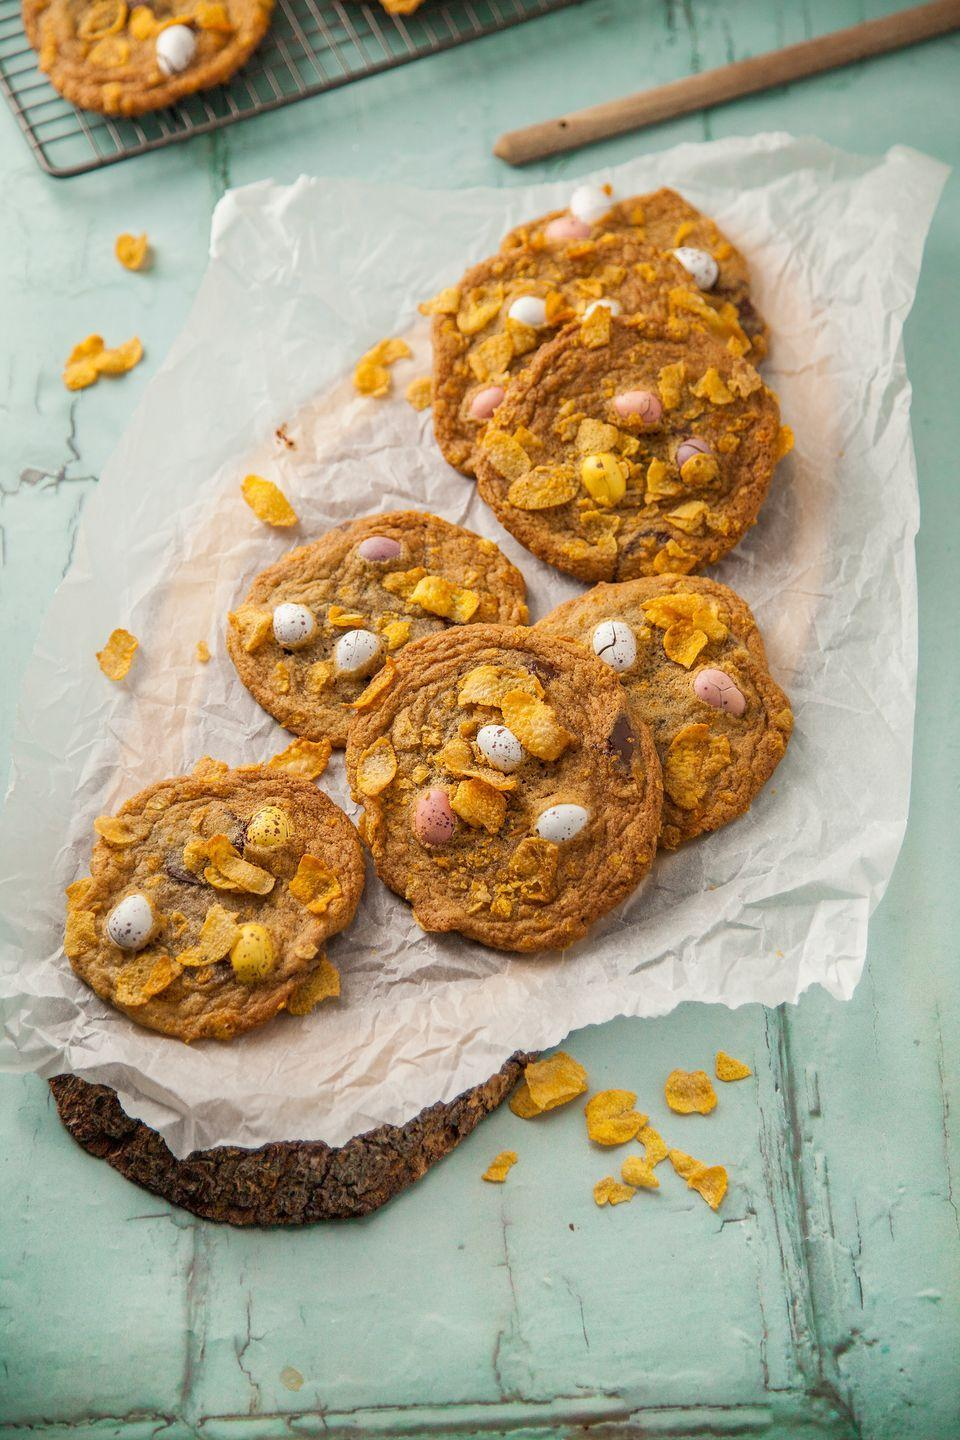 """<p>We love <a href=""""https://www.goodhousekeeping.com/uk/food/g566078/best-easter-biscuit-cookie-recipes/"""" rel=""""nofollow noopener"""" target=""""_blank"""" data-ylk=""""slk:Easter cookies"""" class=""""link rapid-noclick-resp"""">Easter cookies</a> and these biscuits are a twist on classic cornflake cakes. Adding the breakfast cereal gives a nice crunch to these cookies, and they're super fun to make with the kids.</p><p><strong>Recipe: <a href=""""https://www.goodhousekeeping.com/uk/food/recipes/a26582918/chocolate-cornflake-cookies/"""" rel=""""nofollow noopener"""" target=""""_blank"""" data-ylk=""""slk:Chocolate cornflake and mini egg cookies"""" class=""""link rapid-noclick-resp"""">Chocolate cornflake and mini egg cookies</a></strong></p>"""